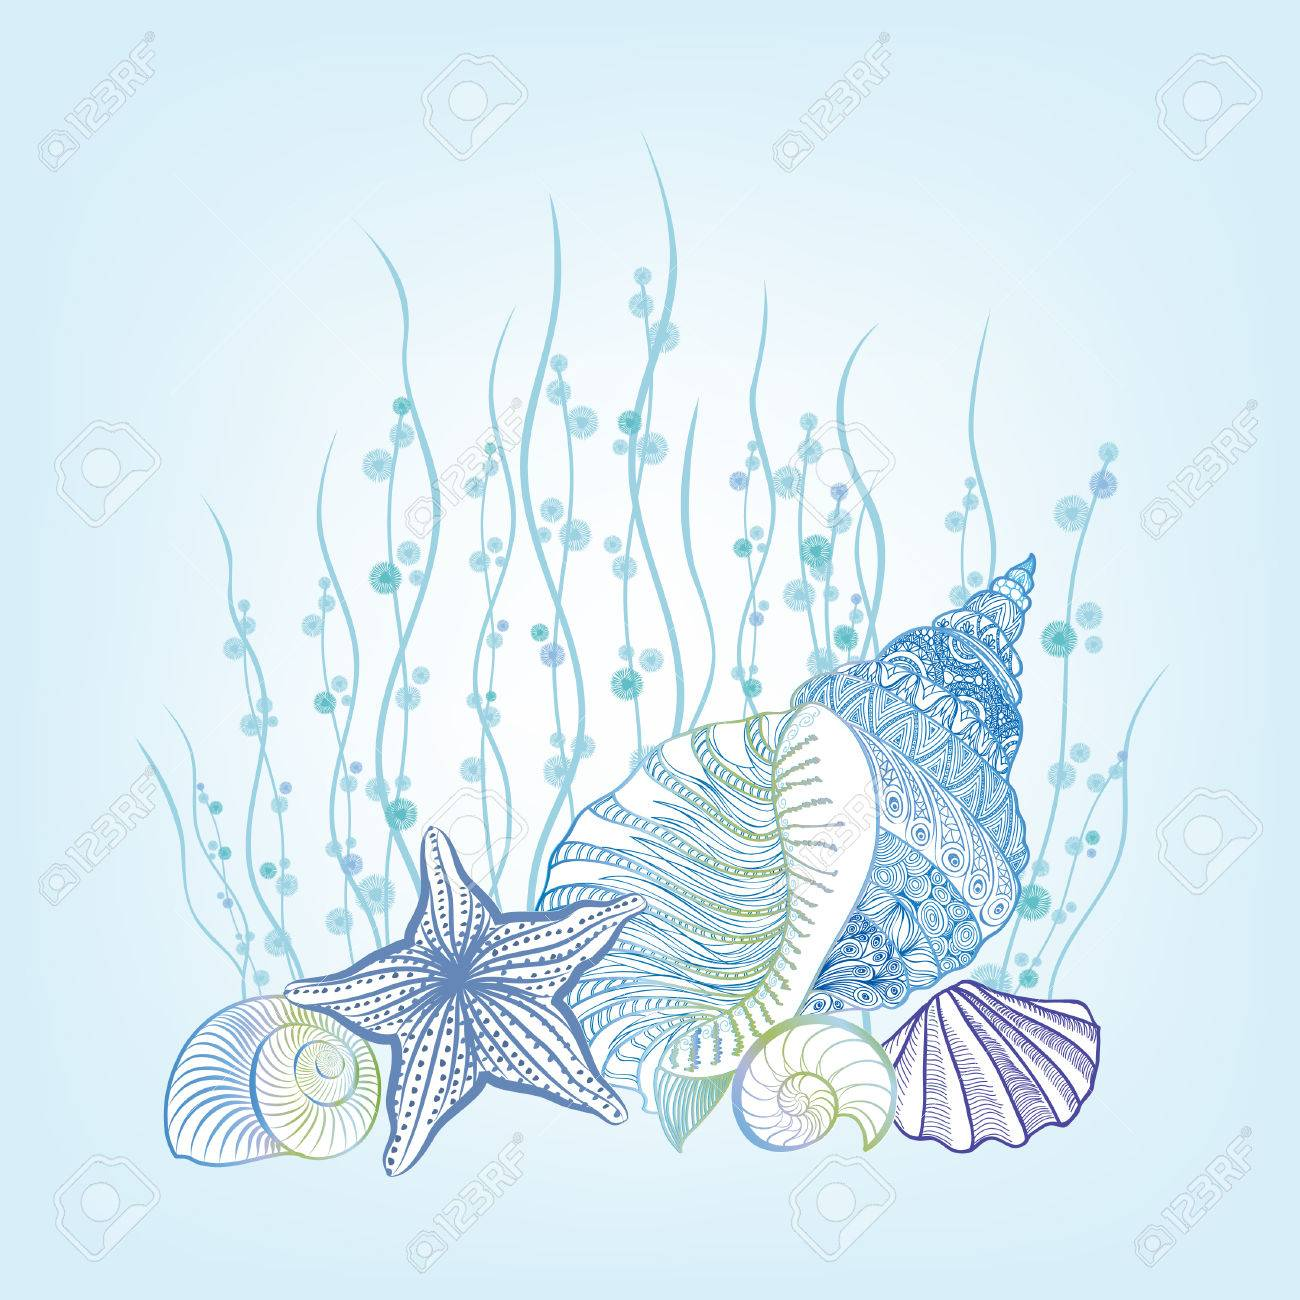 SeaShell background Summer Holiday Concept. Vector Background with Seashells, Sea Star and Sand. Hand Drawn Etching Style Underwater Marine life stillife - 59225292